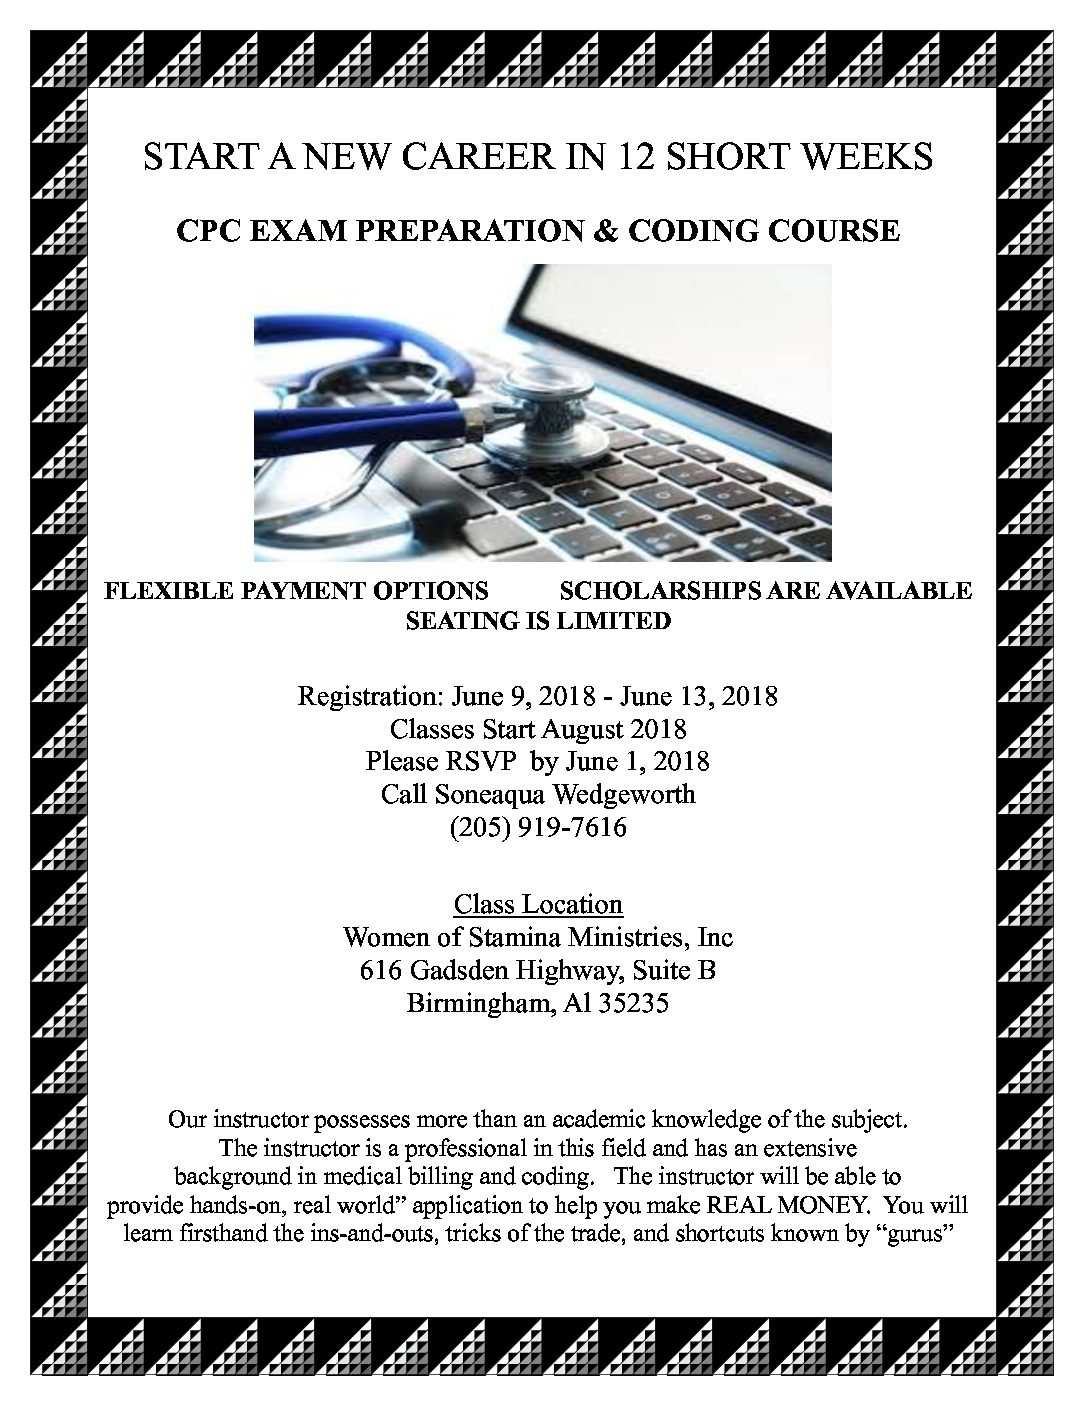 Medical Coding Flyer